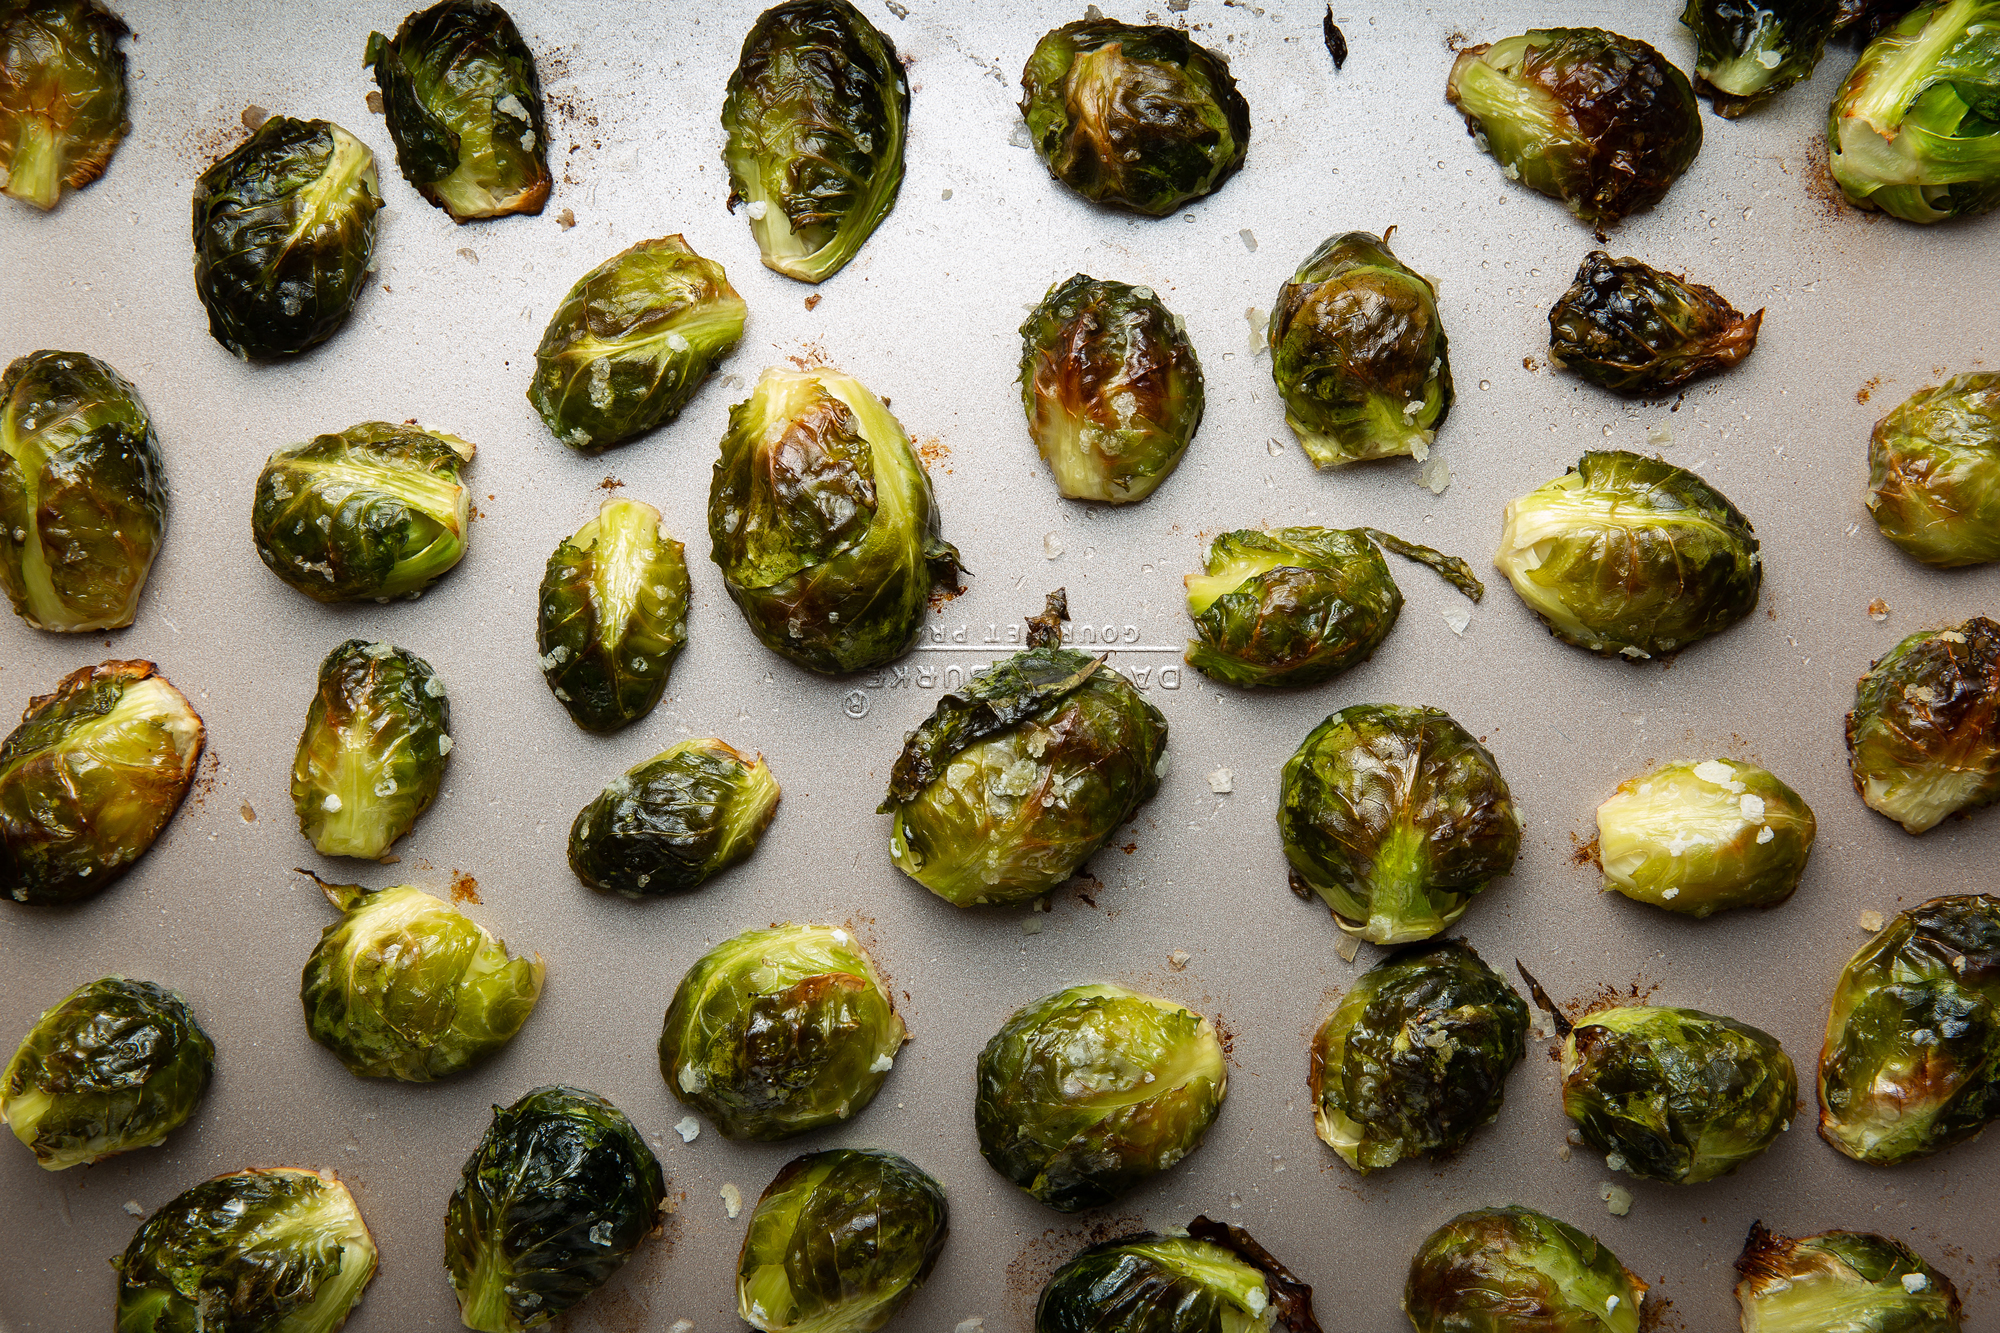 Oven Roasted Brussels Sprouts with Olive Oil and Salt